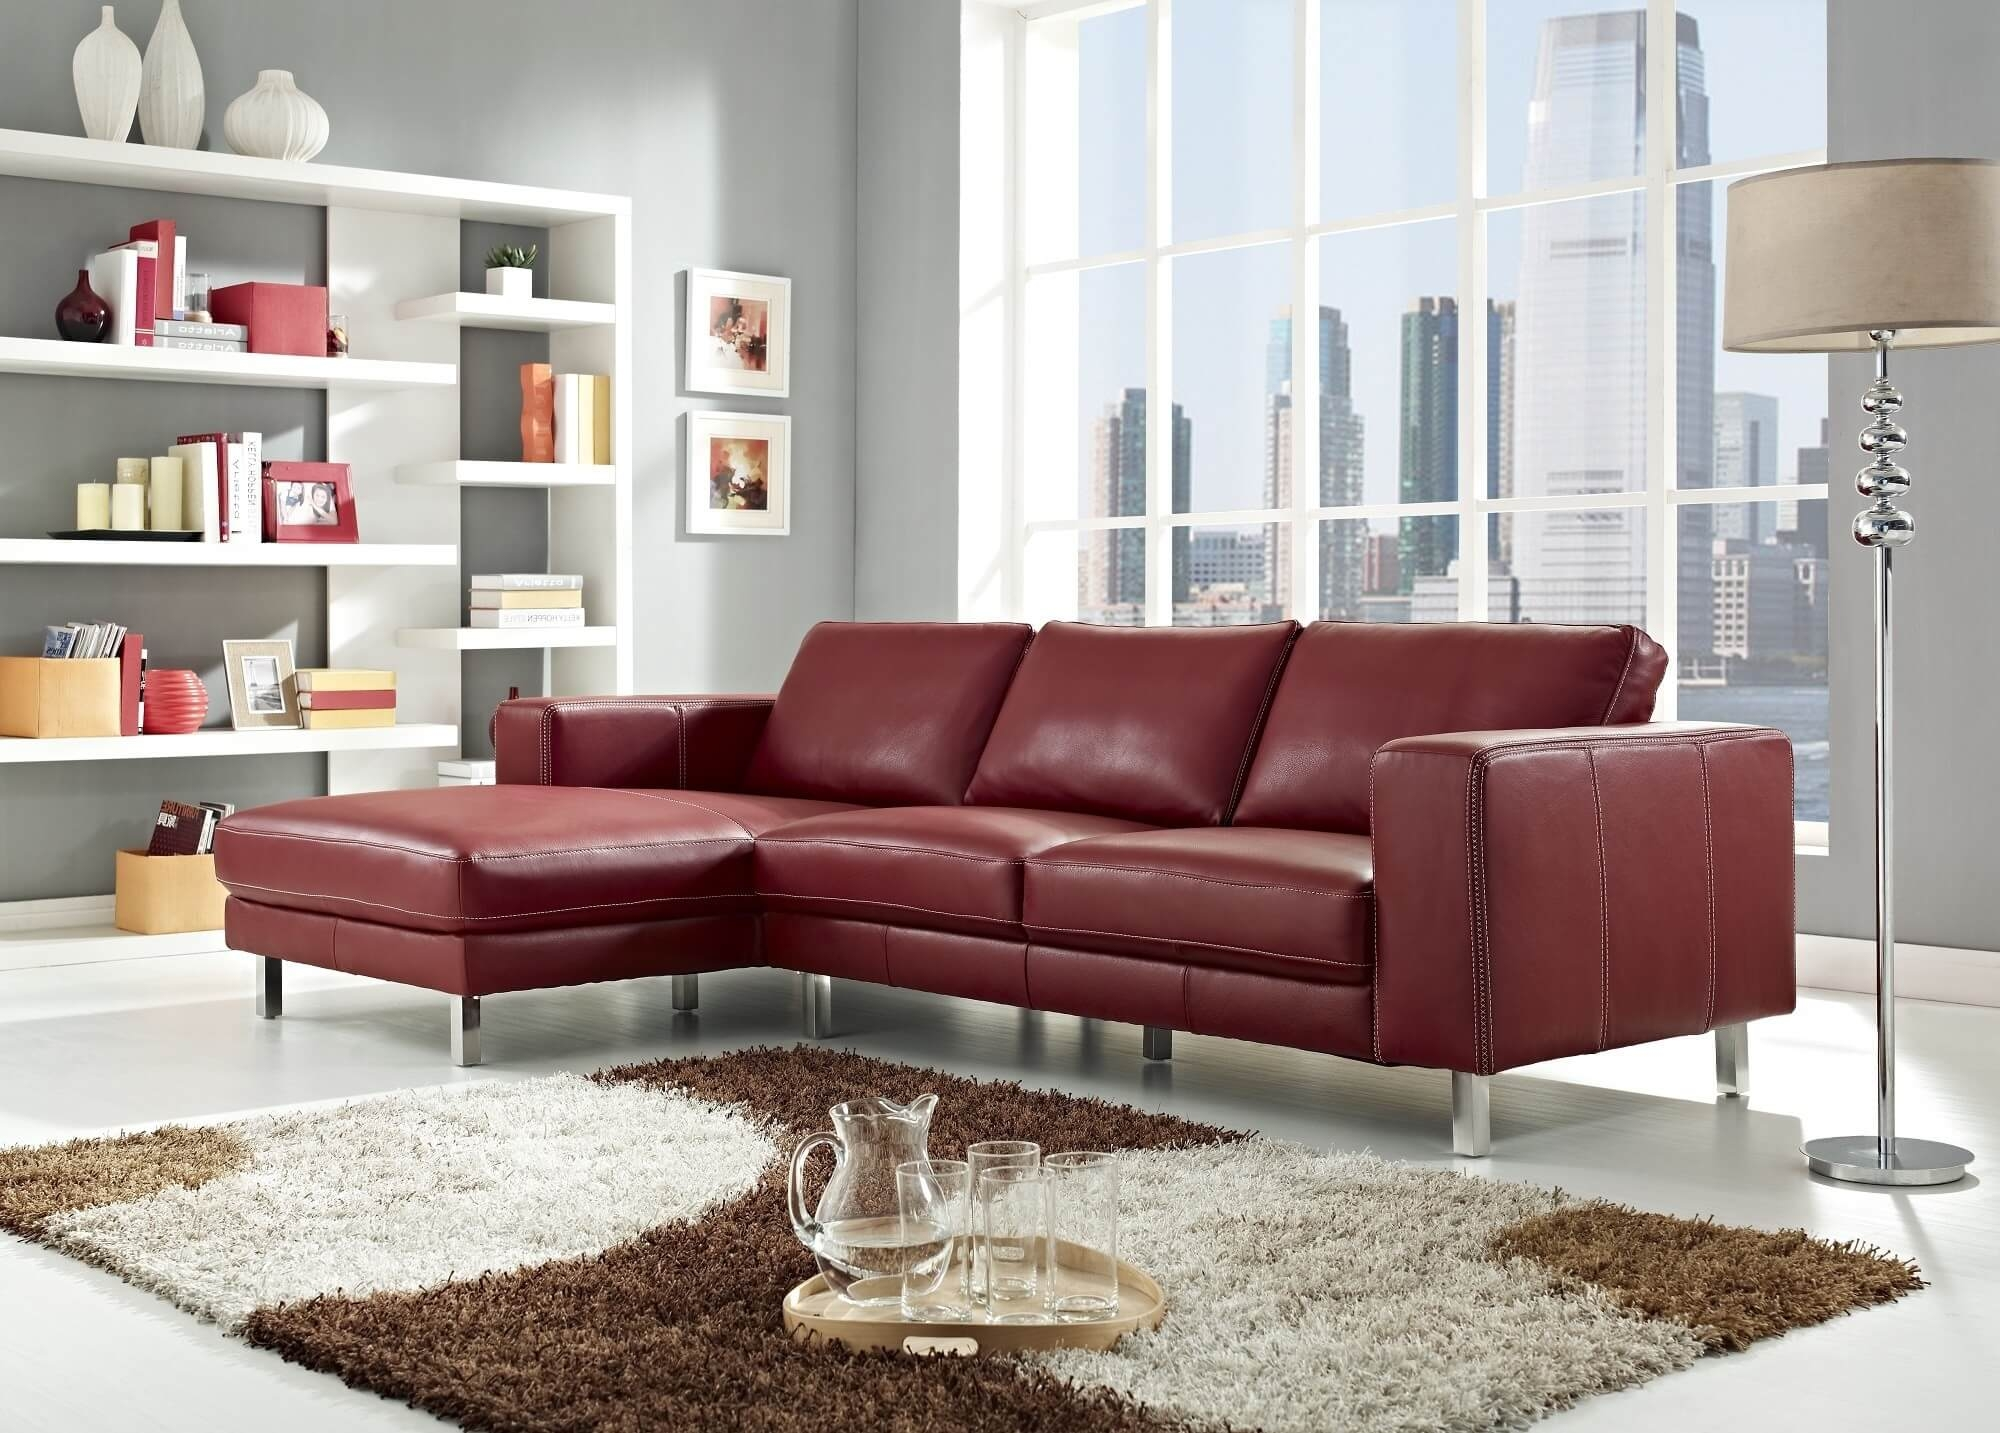 18 Stylish Modern Red Sectional Sofas Pertaining To Elegant Sectional Sofas (Image 1 of 15)